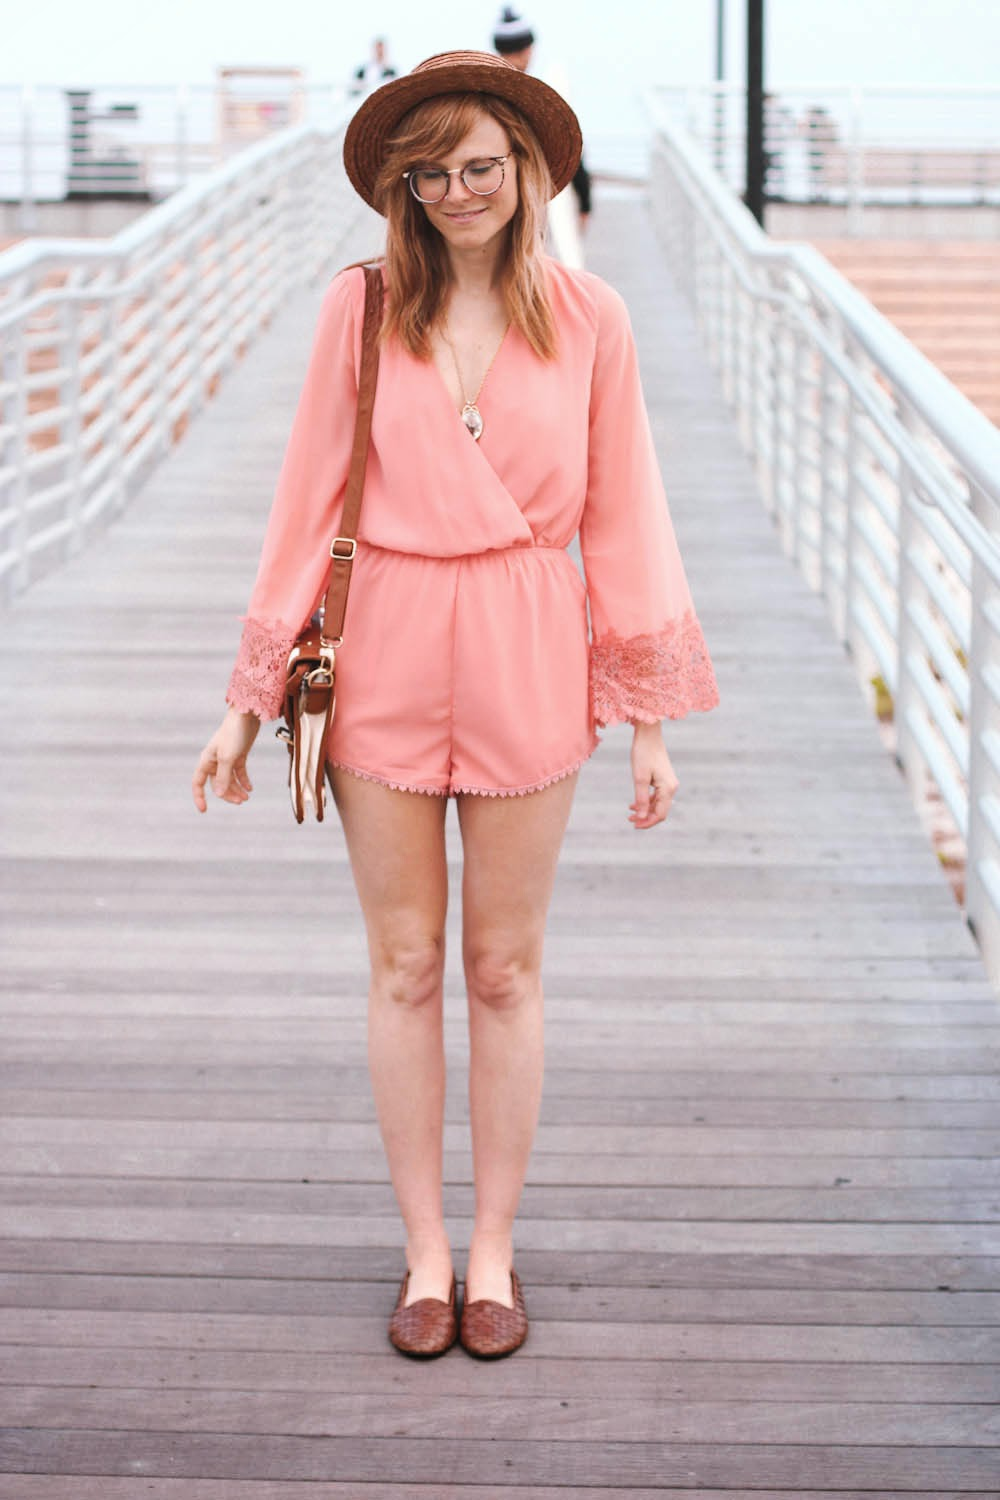 nyc fashion blog, nyc fashion bloggers, nyc style, long beach ny, lulus romper